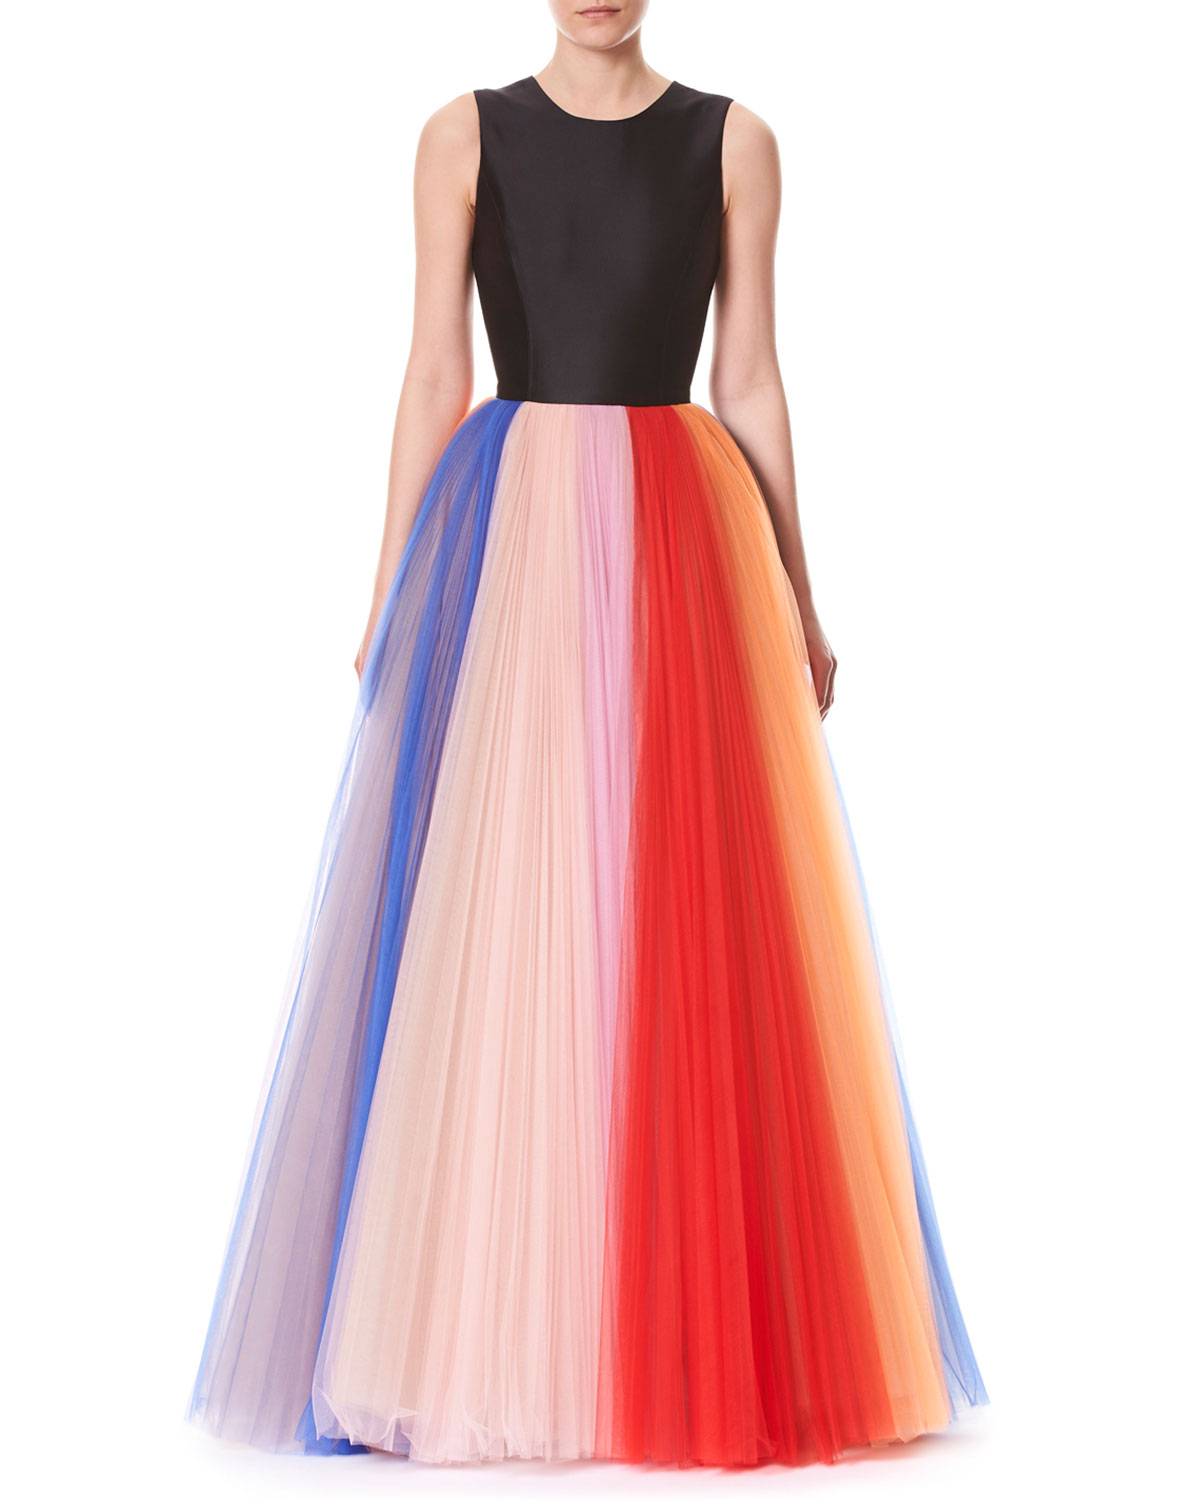 98a1160accd Carolina Herrera Sleeveless Evening Gown w  Pleated Tulle Skirt ...